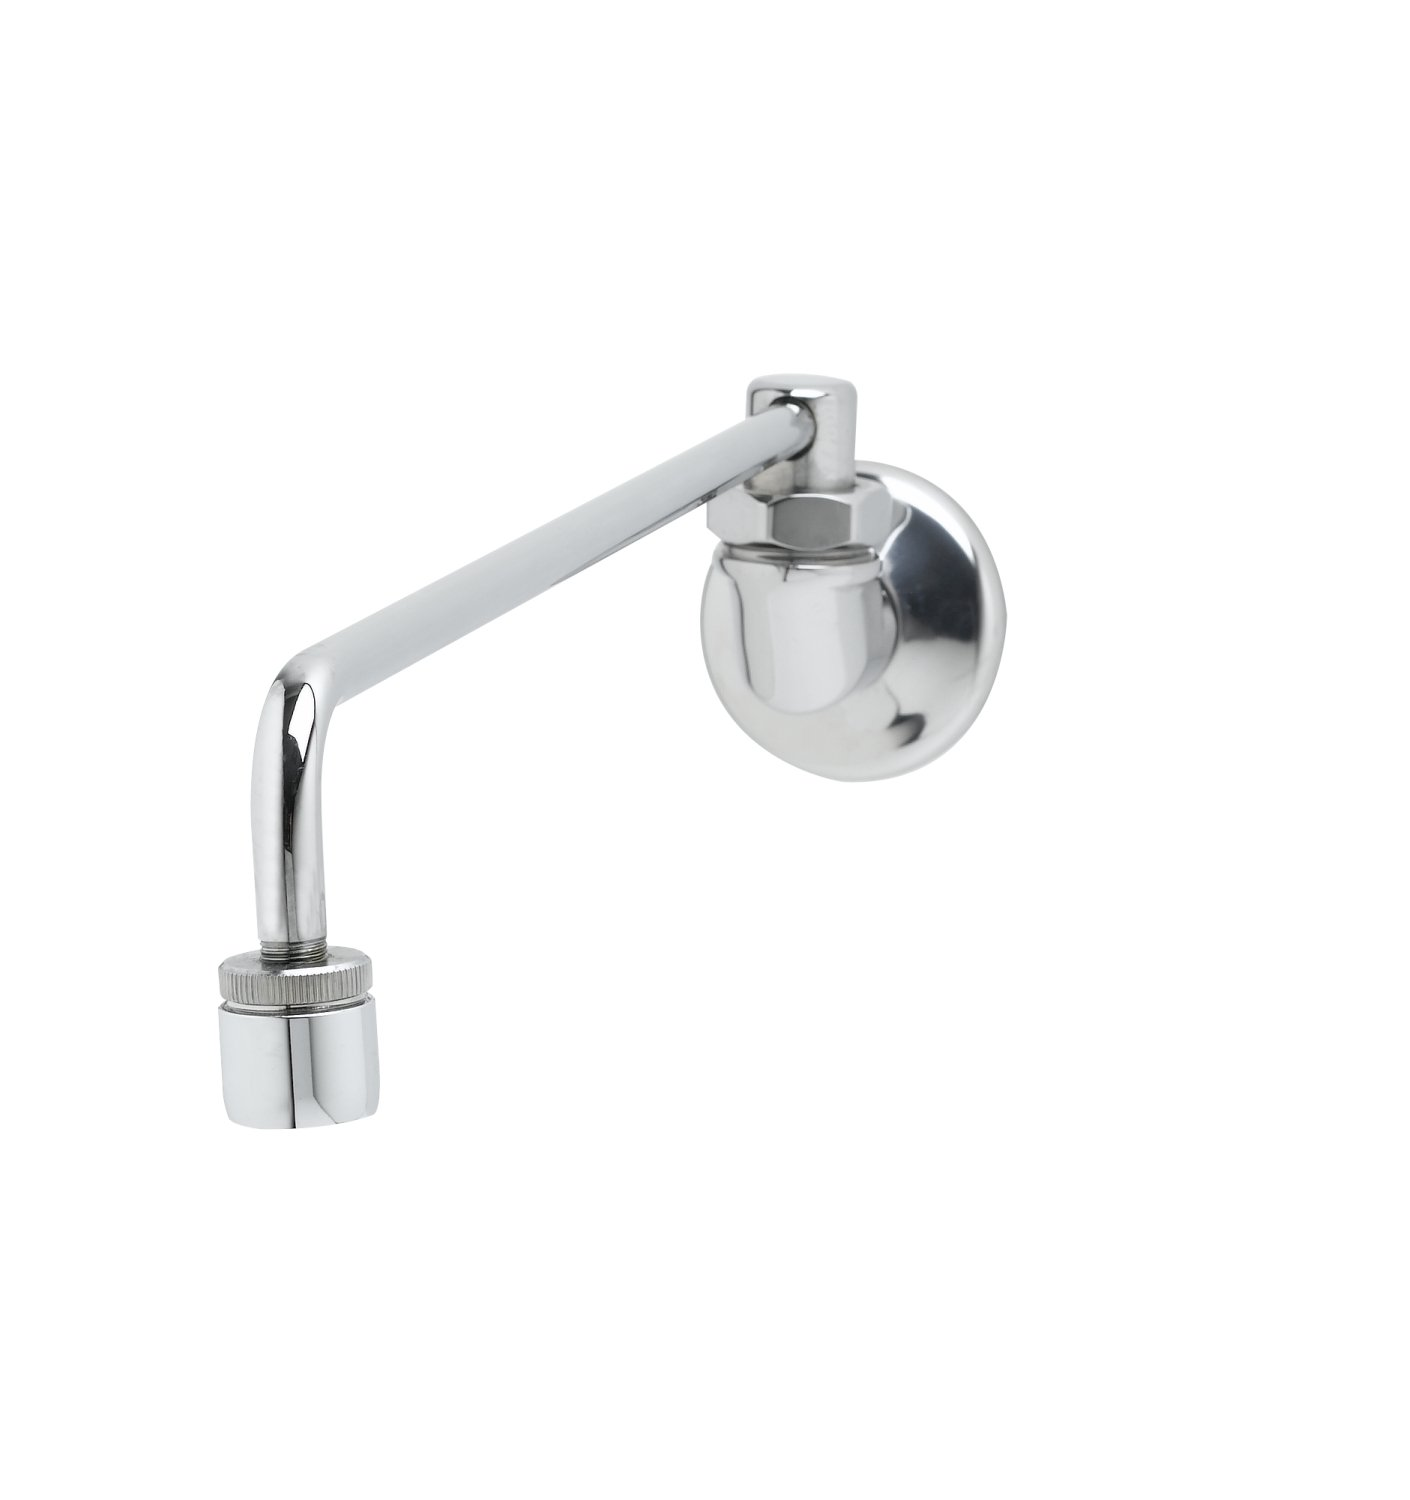 T&S Brass B-0577 Range Faucet, Wall Mount, Aerator, 13-1/8-Inch Nozzle Length, 1/2-Inch Npt Male Inlet